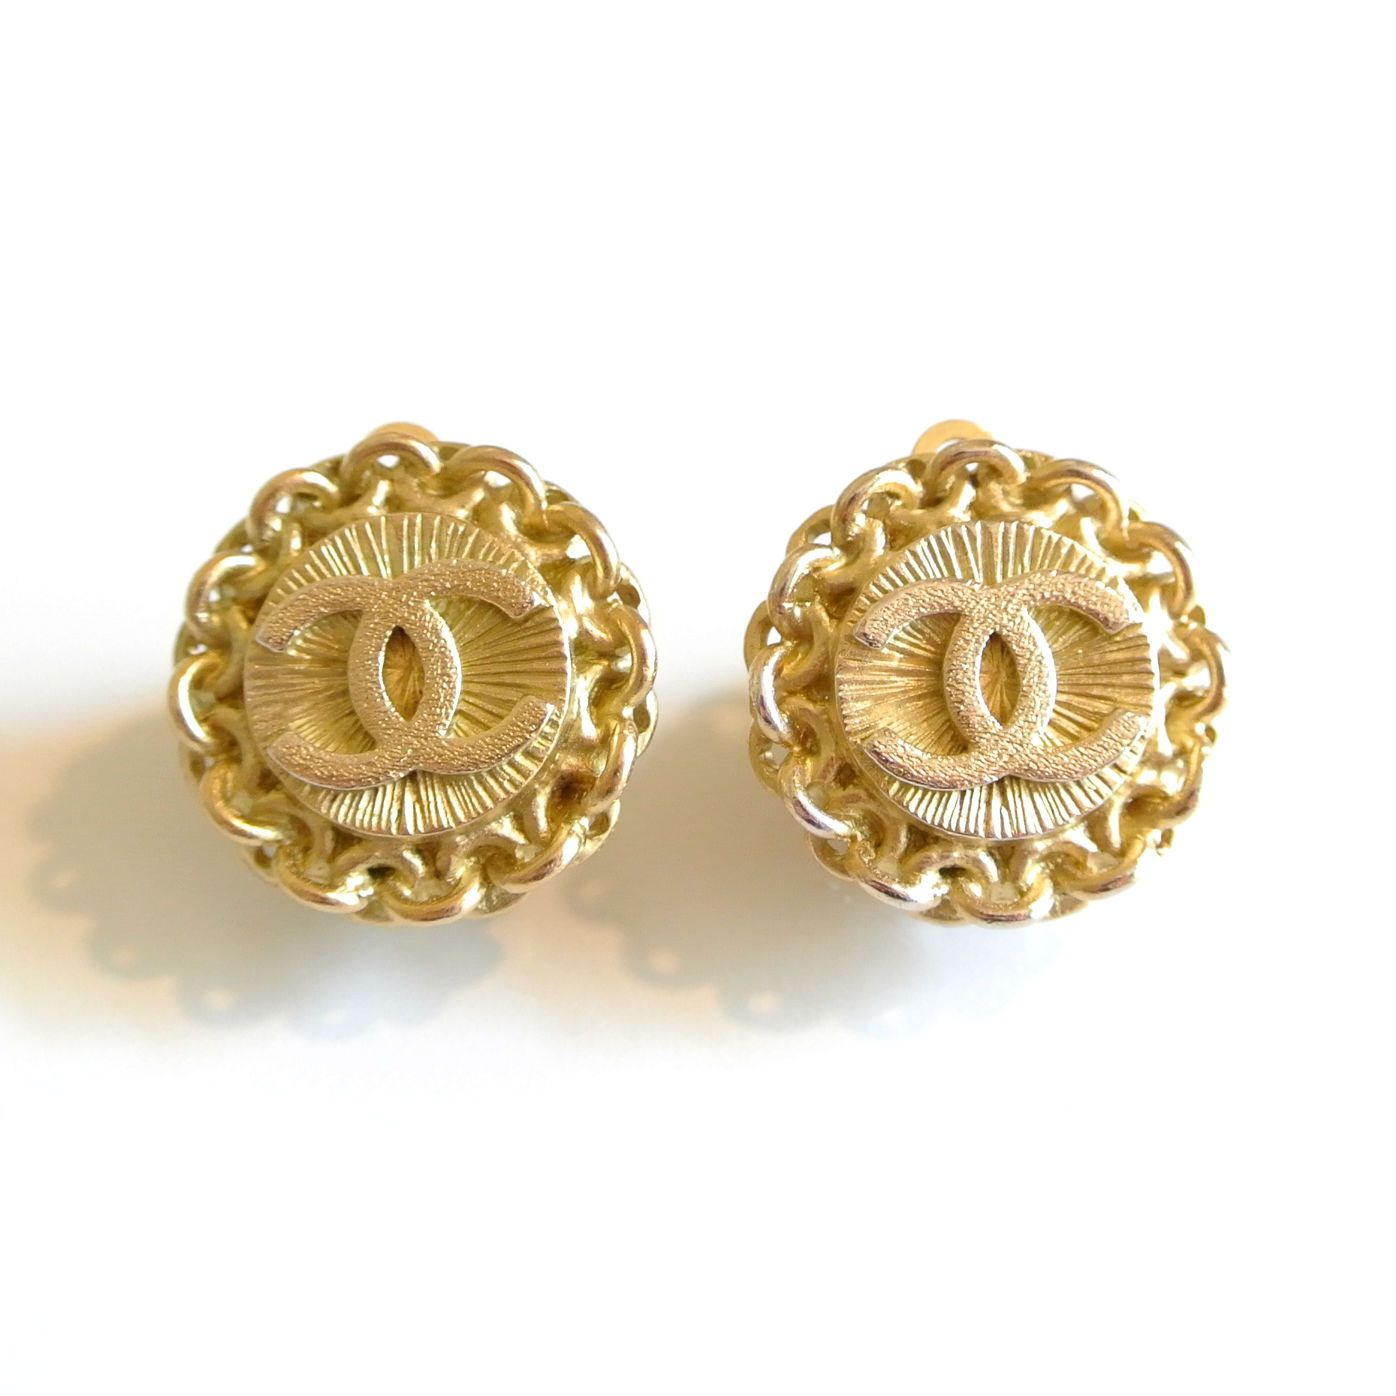 ©miri_mari - Vintage CHANEL CC Clipped Earrings ~ SOLD OUT